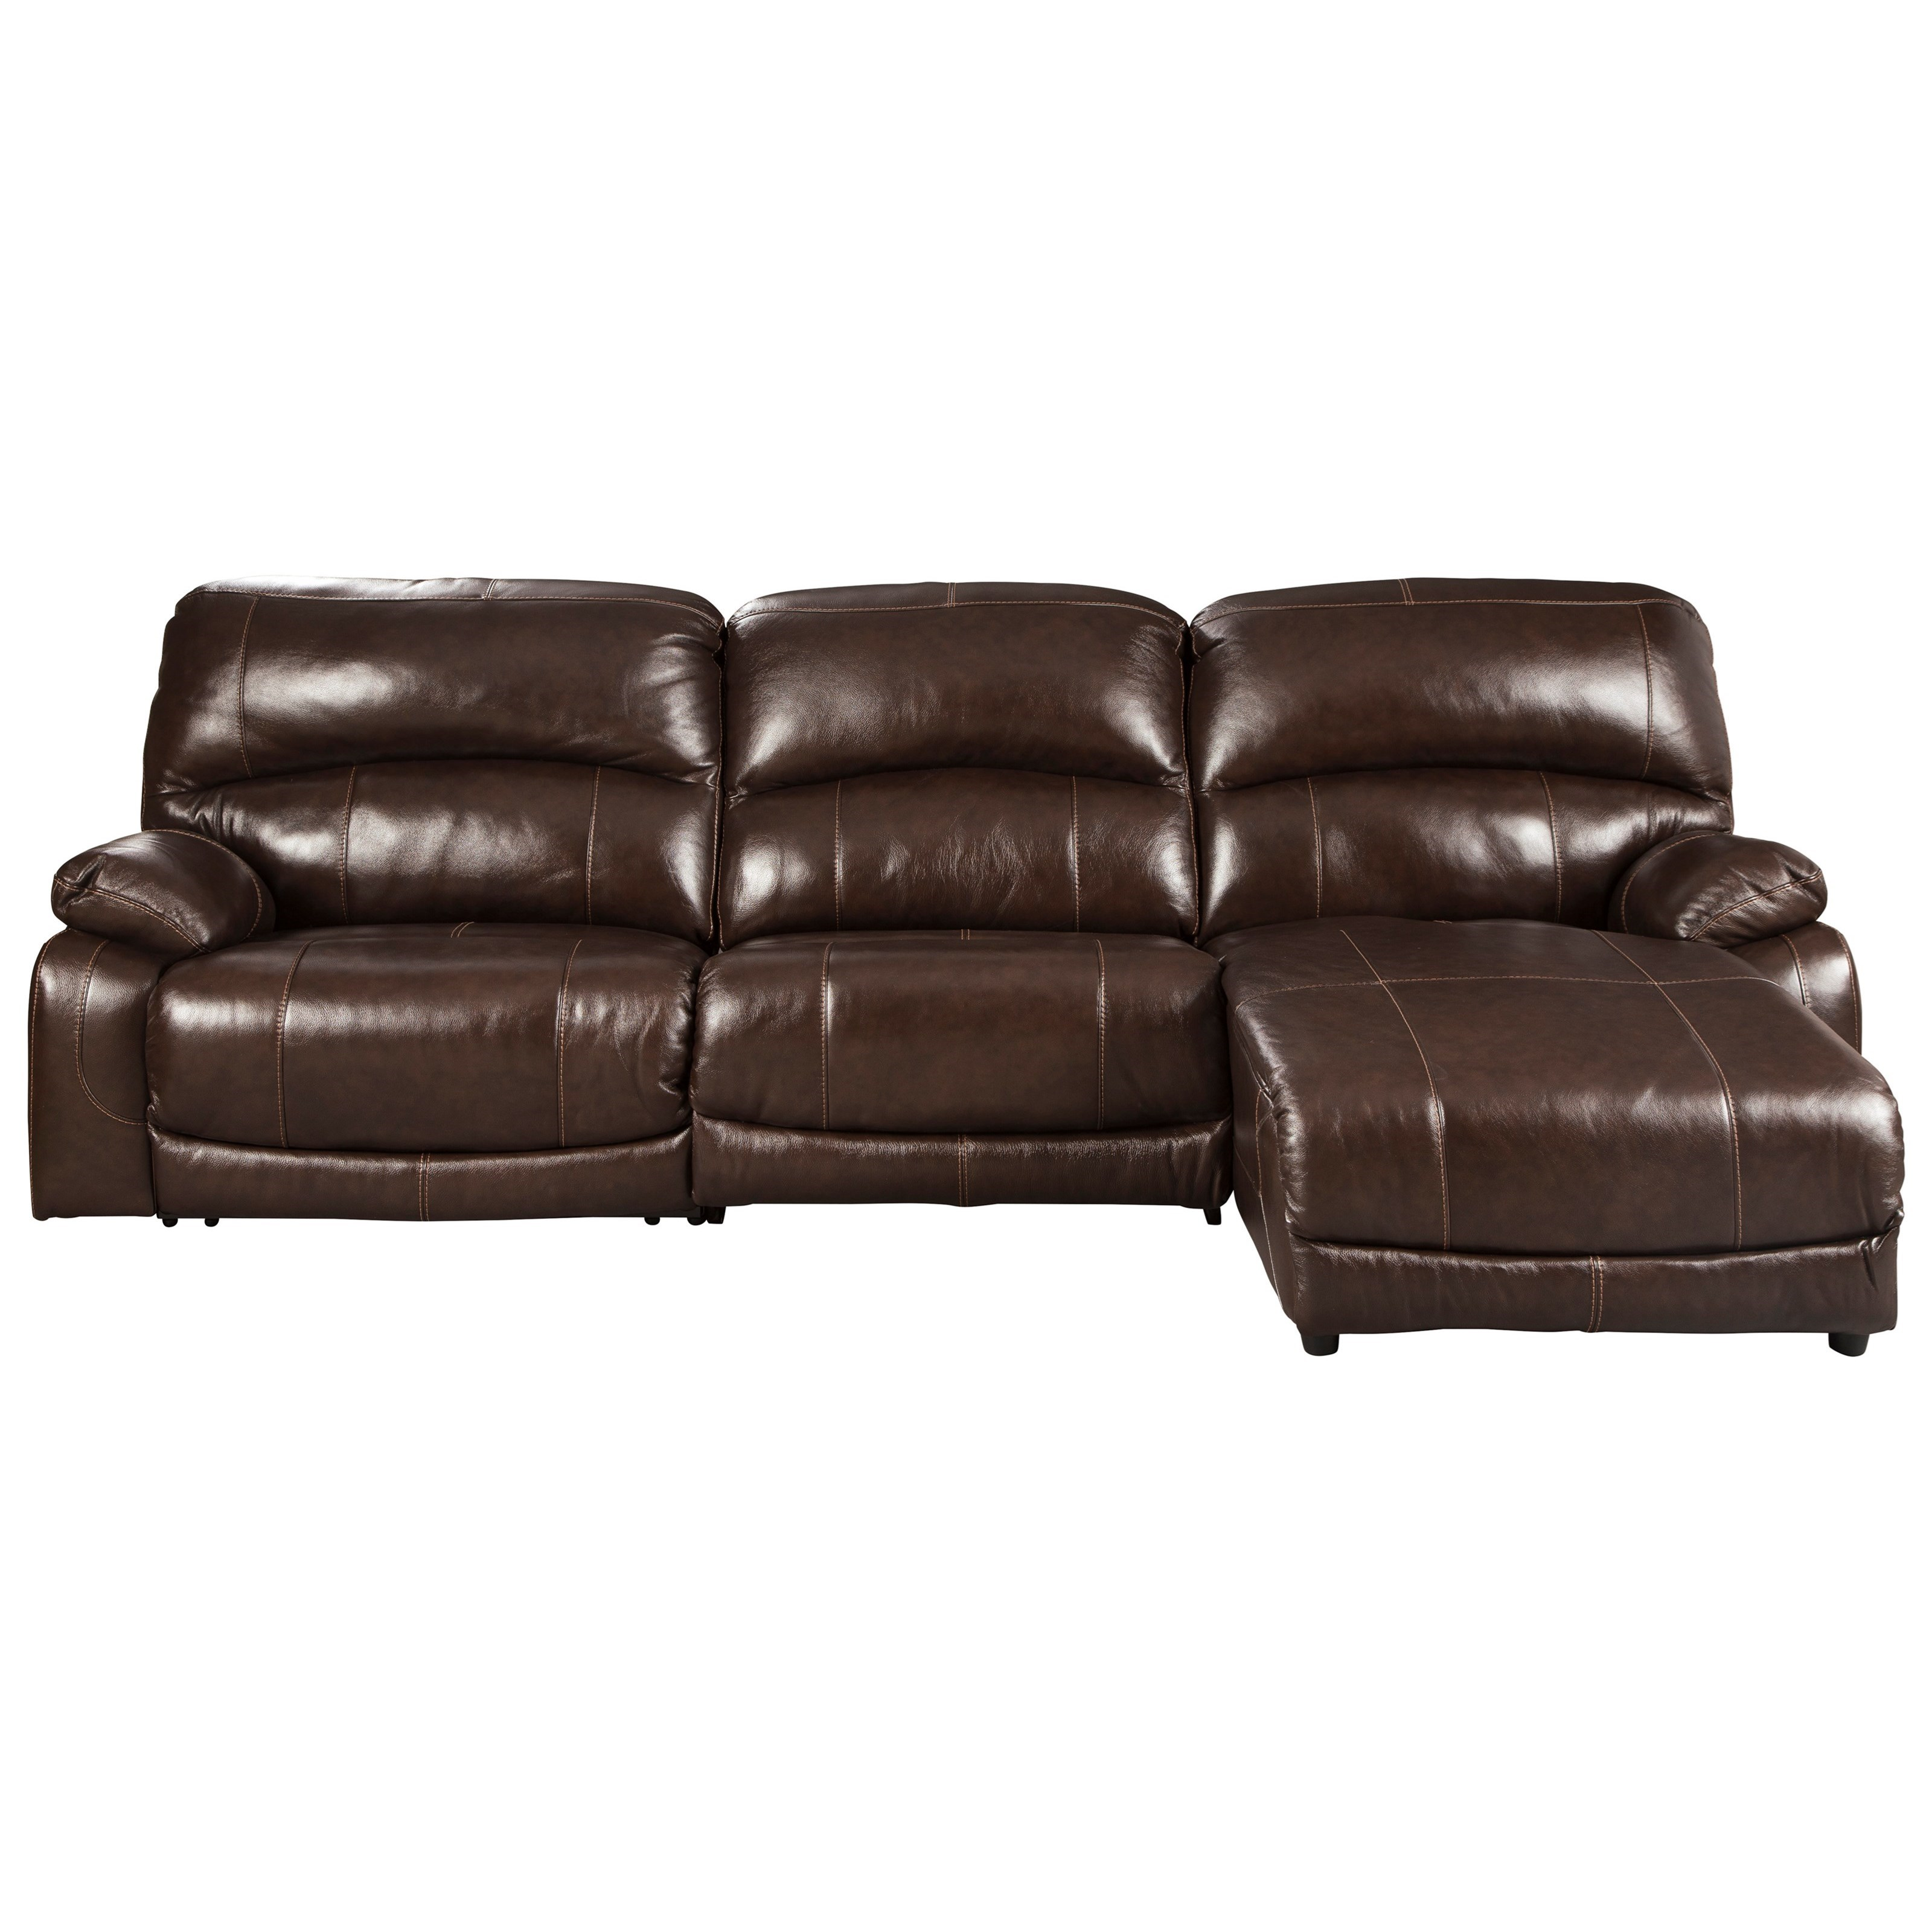 Hallstrung 3-Piece Reclining Sectional with Chaise by Signature Design by Ashley at Northeast Factory Direct